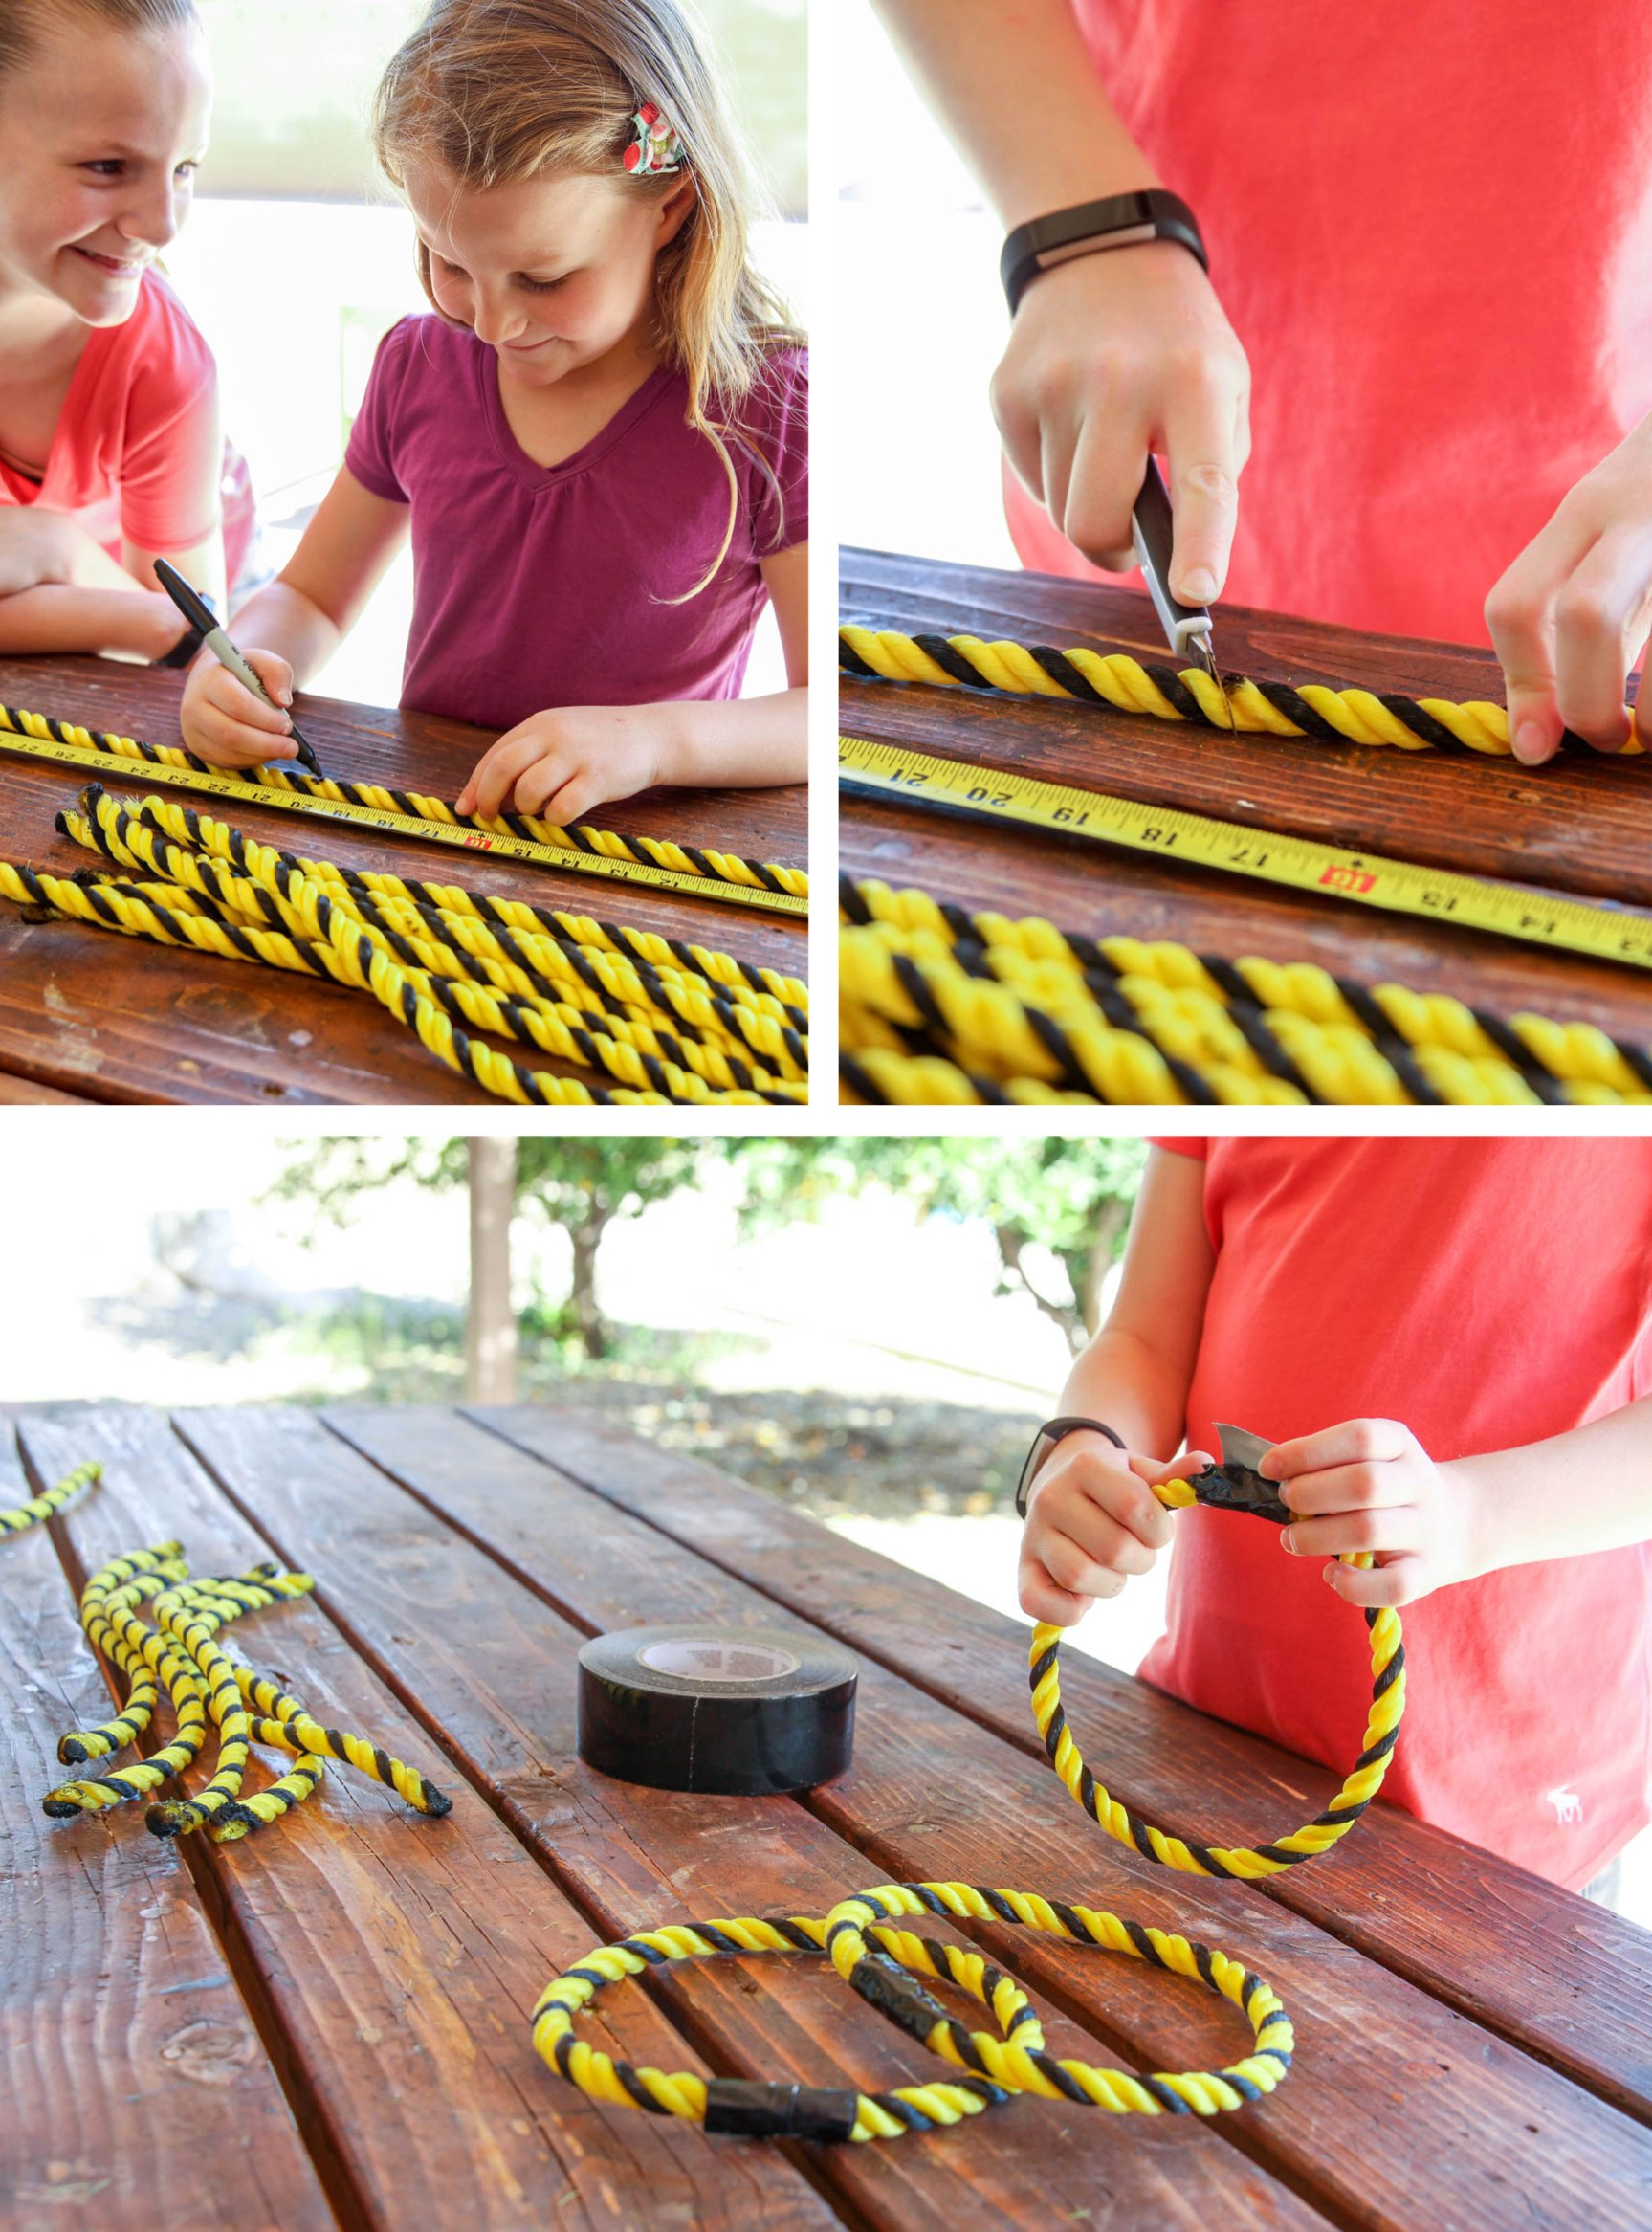 How to make Rings for a Ring Toss Backyard Game via @PagingSupermom